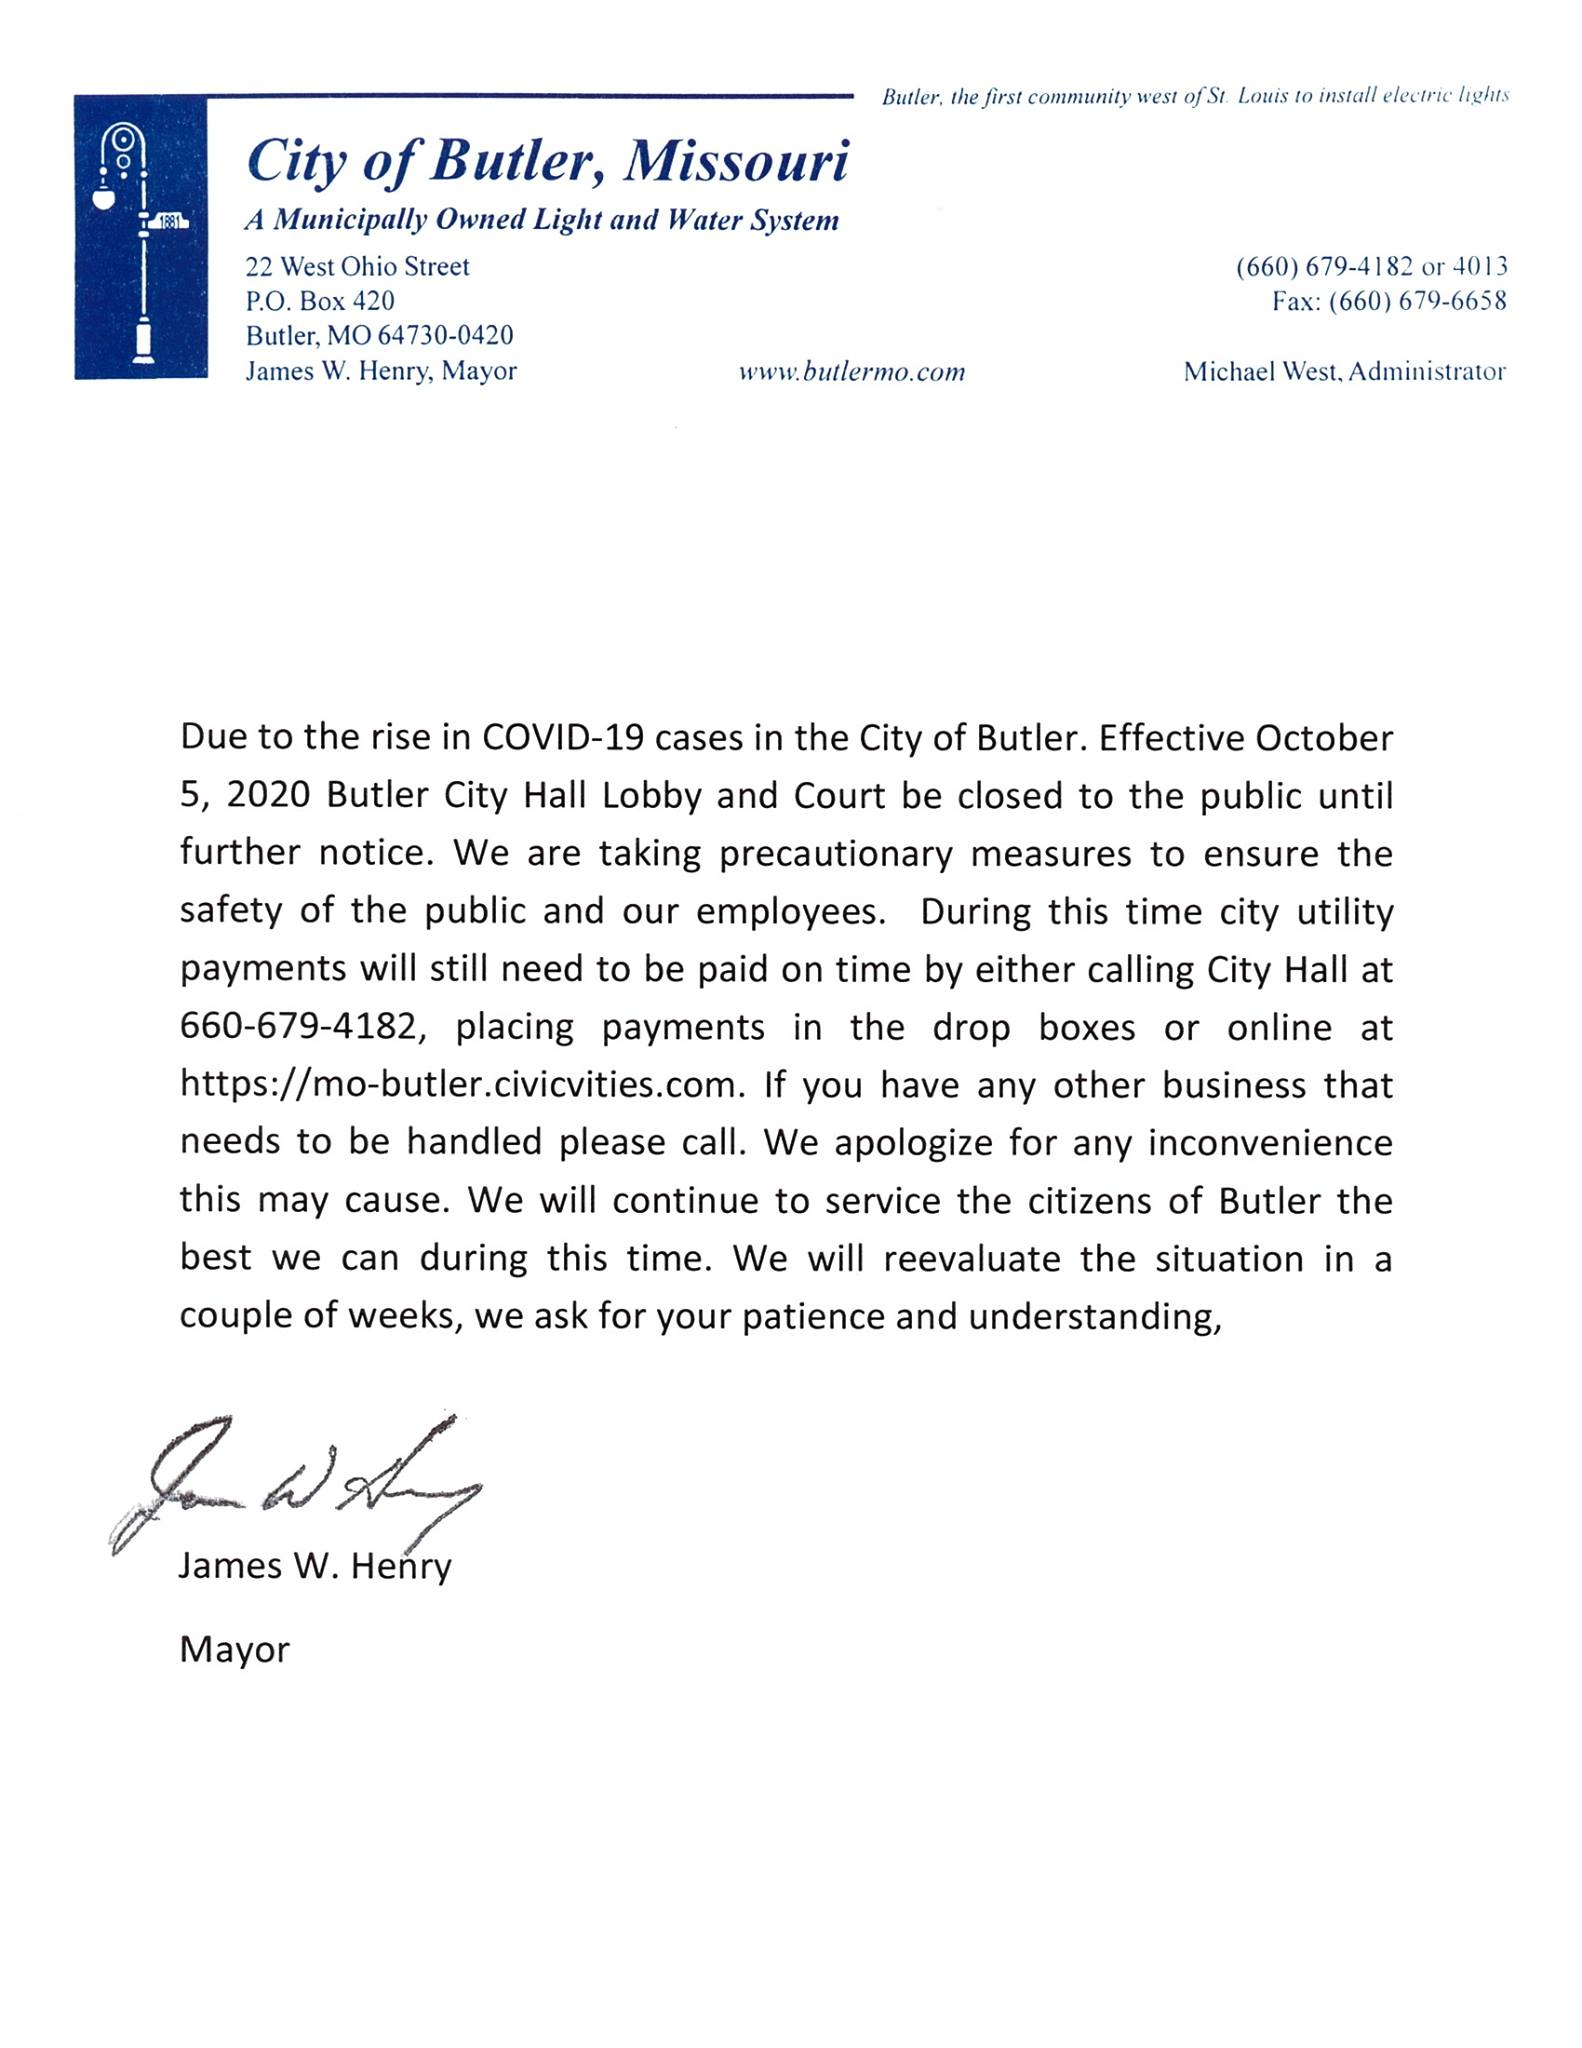 City of Butler Closed